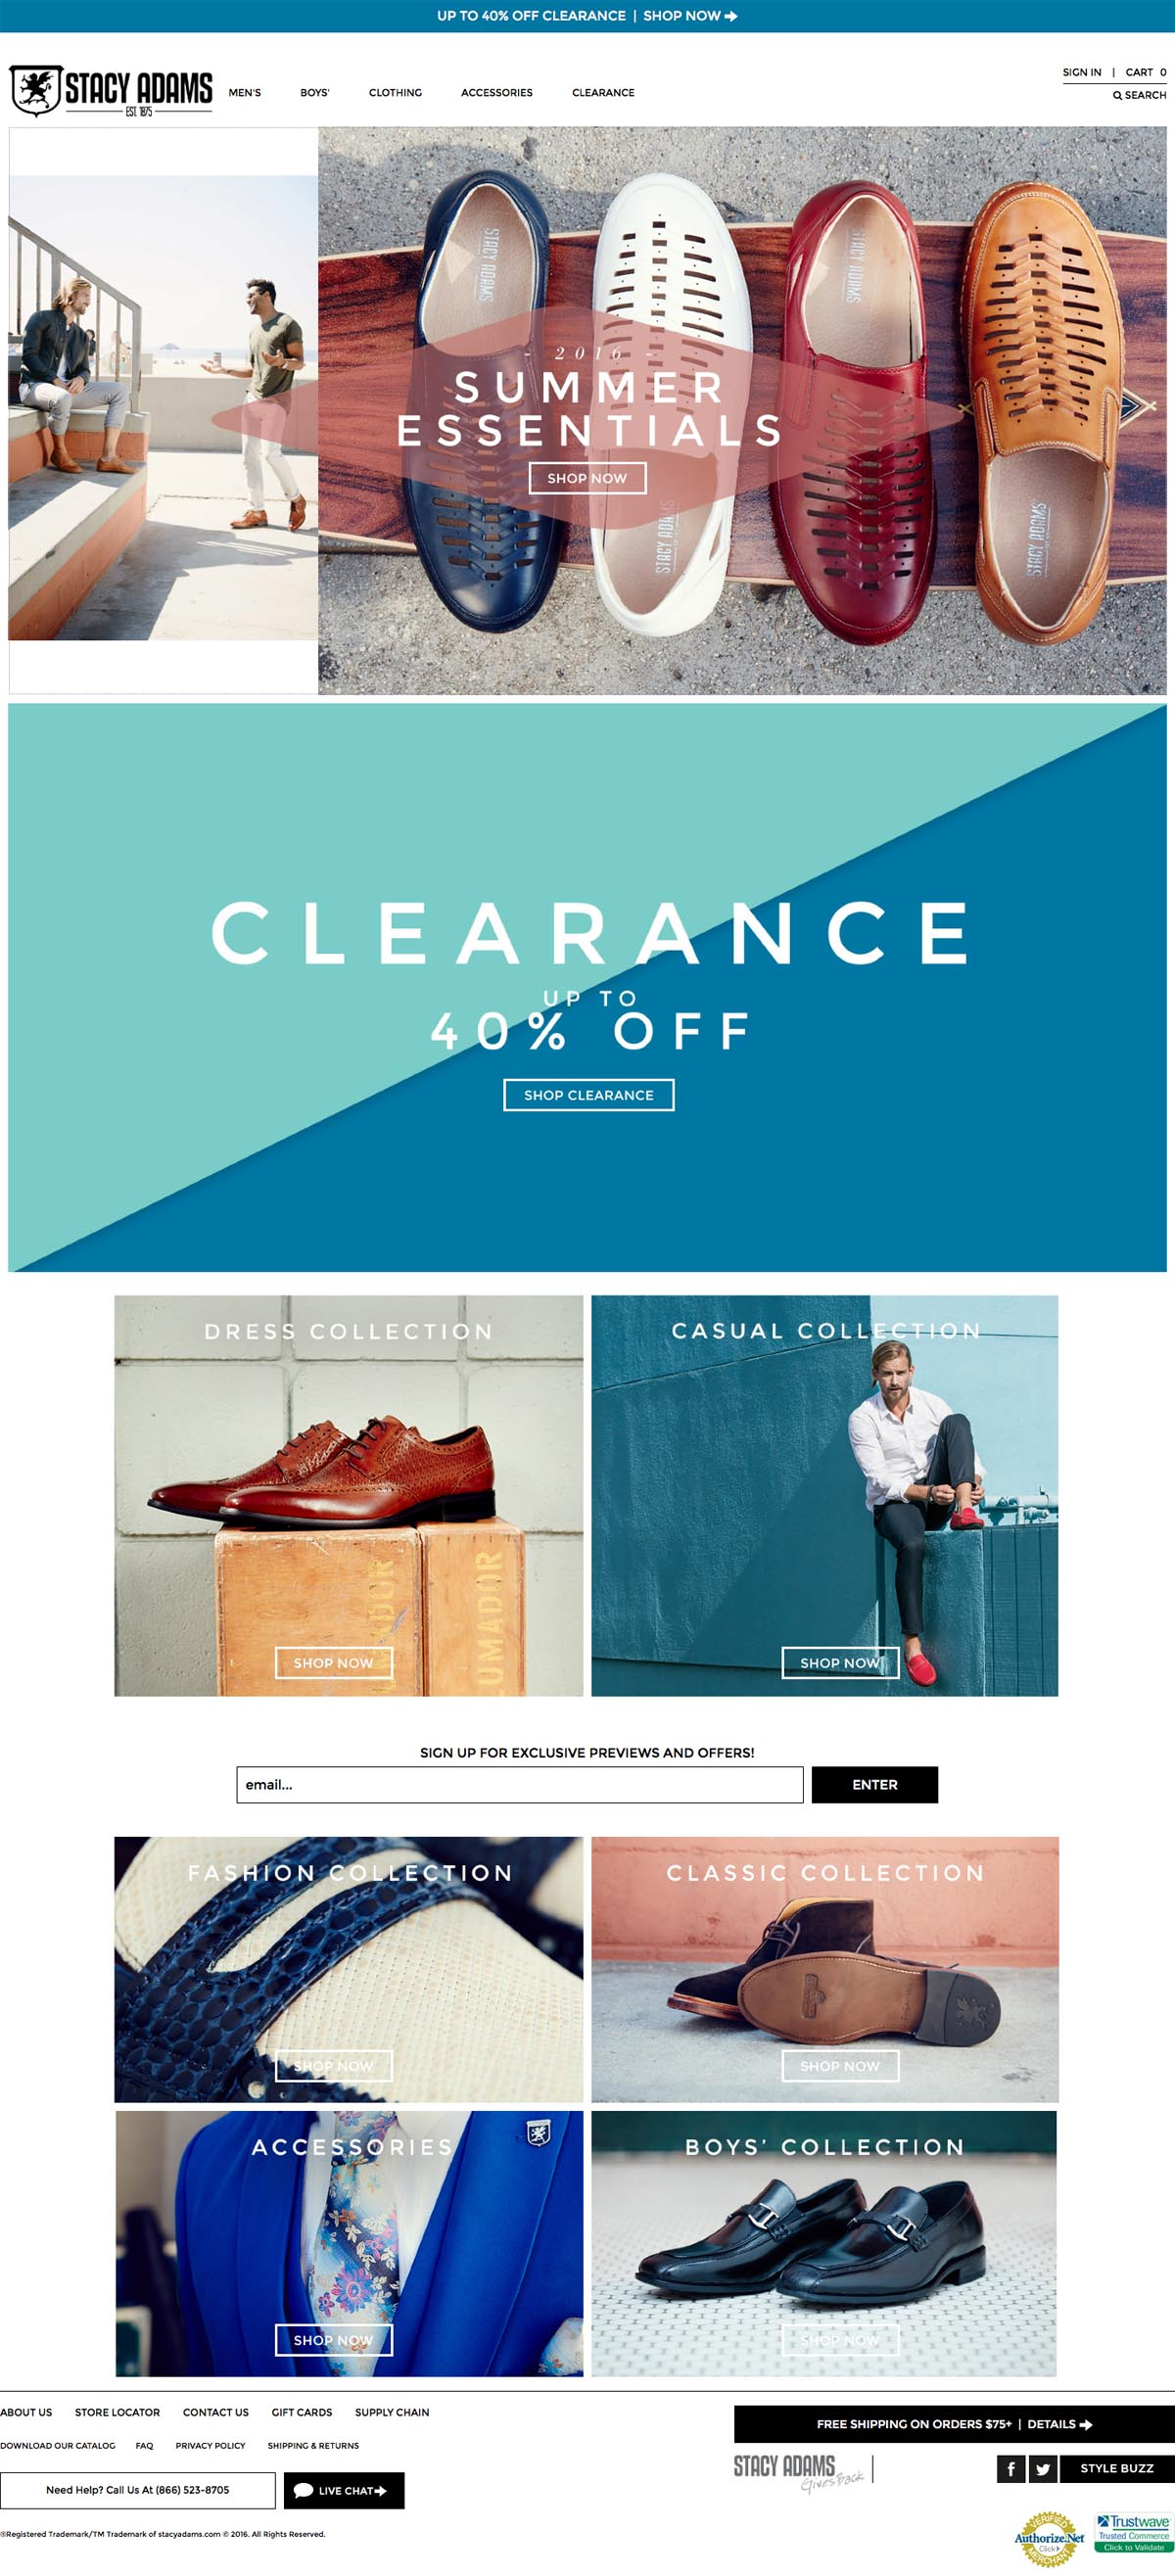 eCommerce website: Stacy Adams